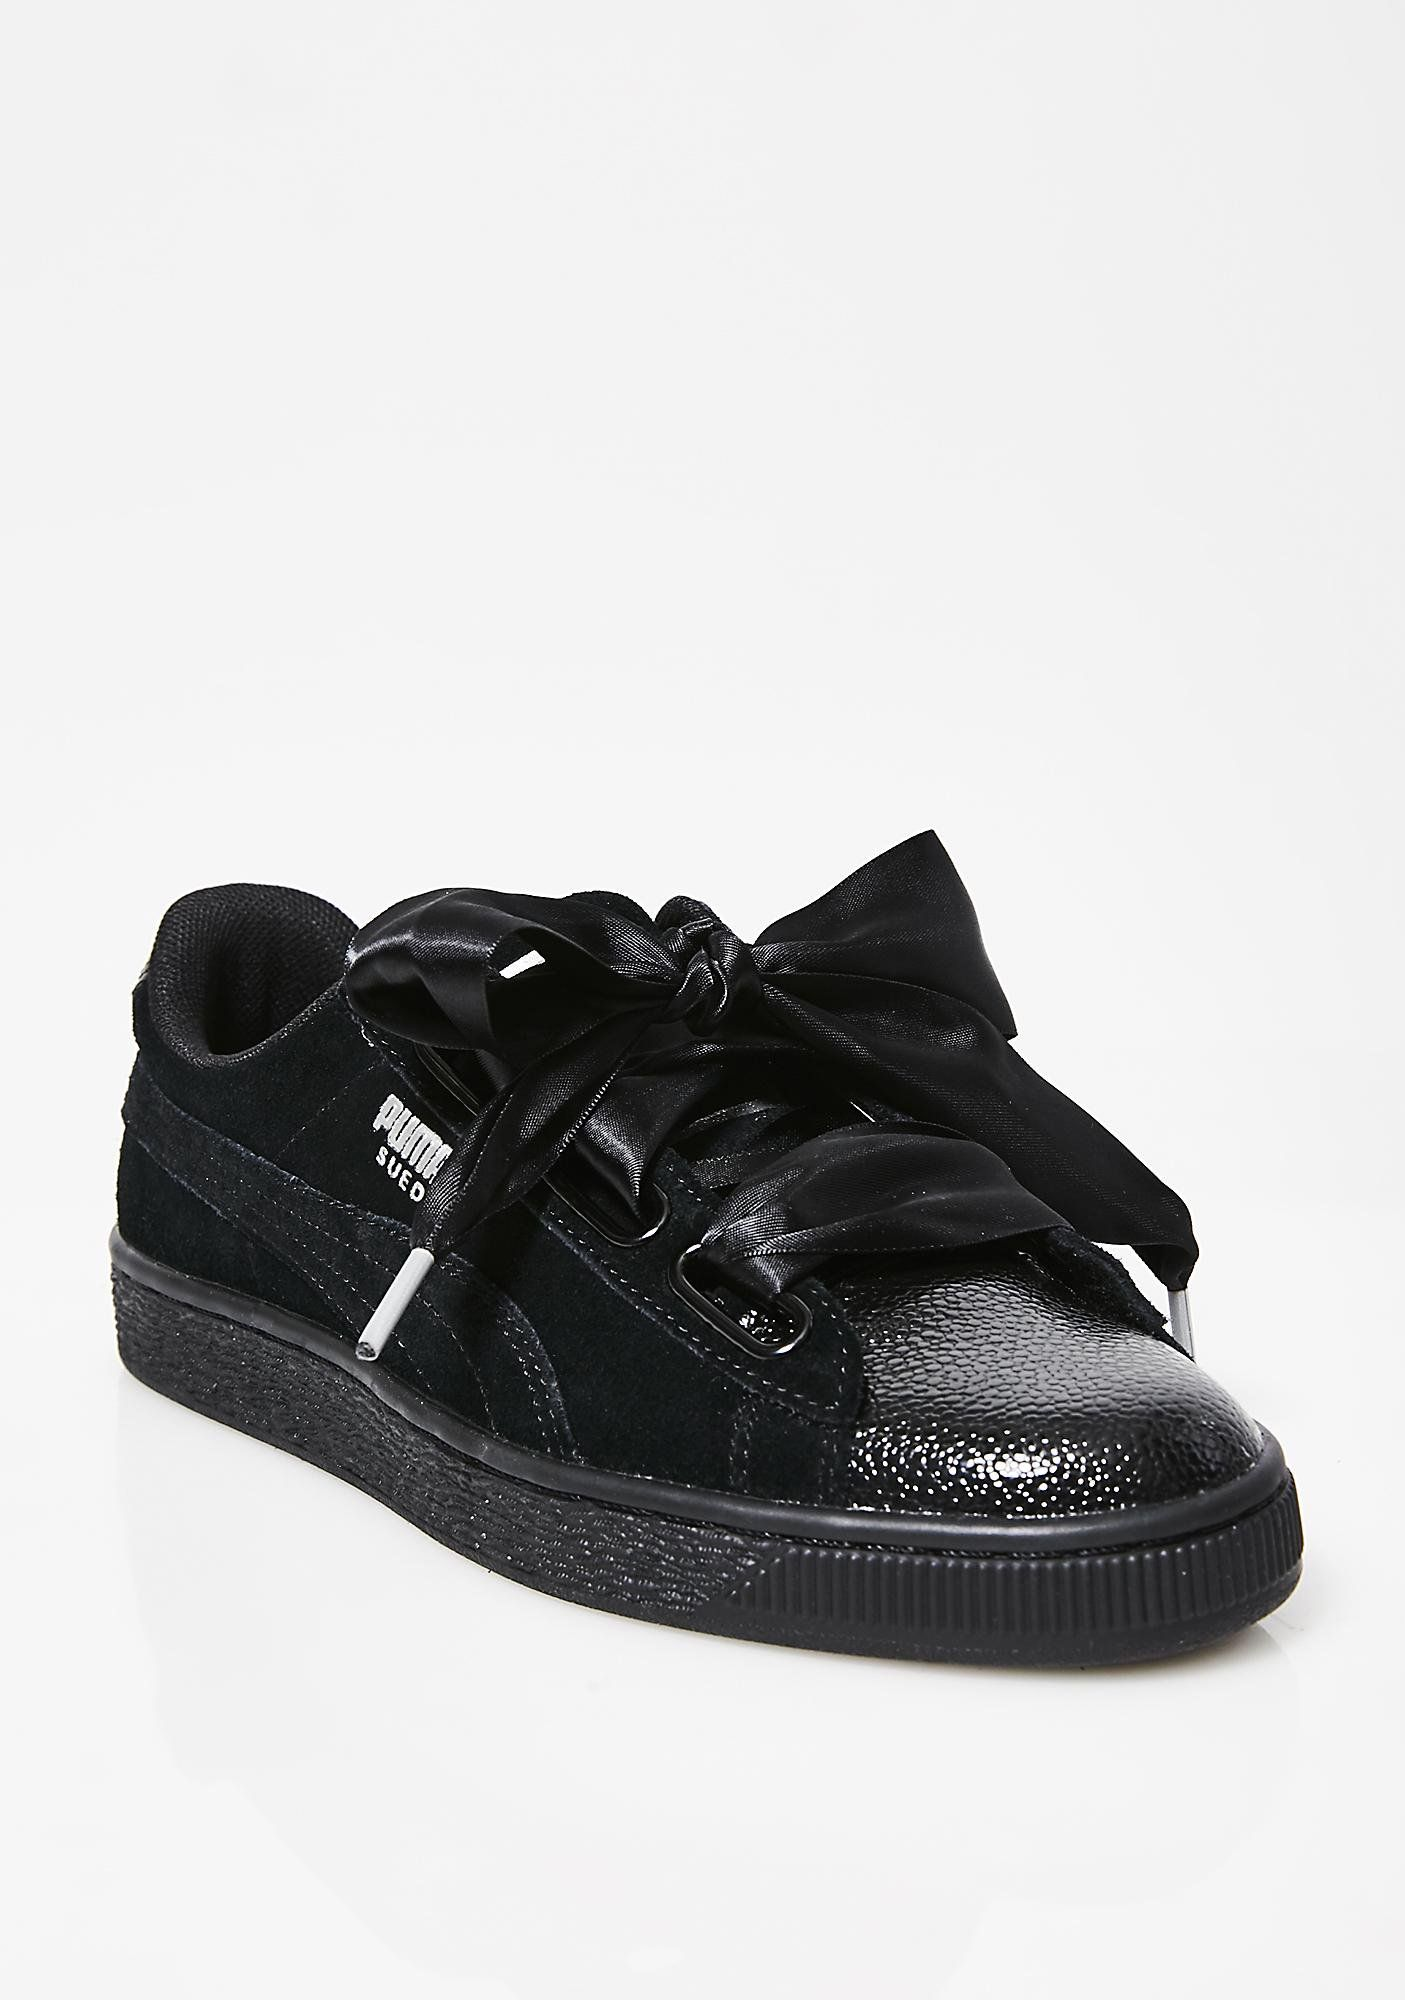 finest selection 98f06 420a0 PUMA Suede Heart Bubble Sneakers | Shoes | Sneakers, Puma ...